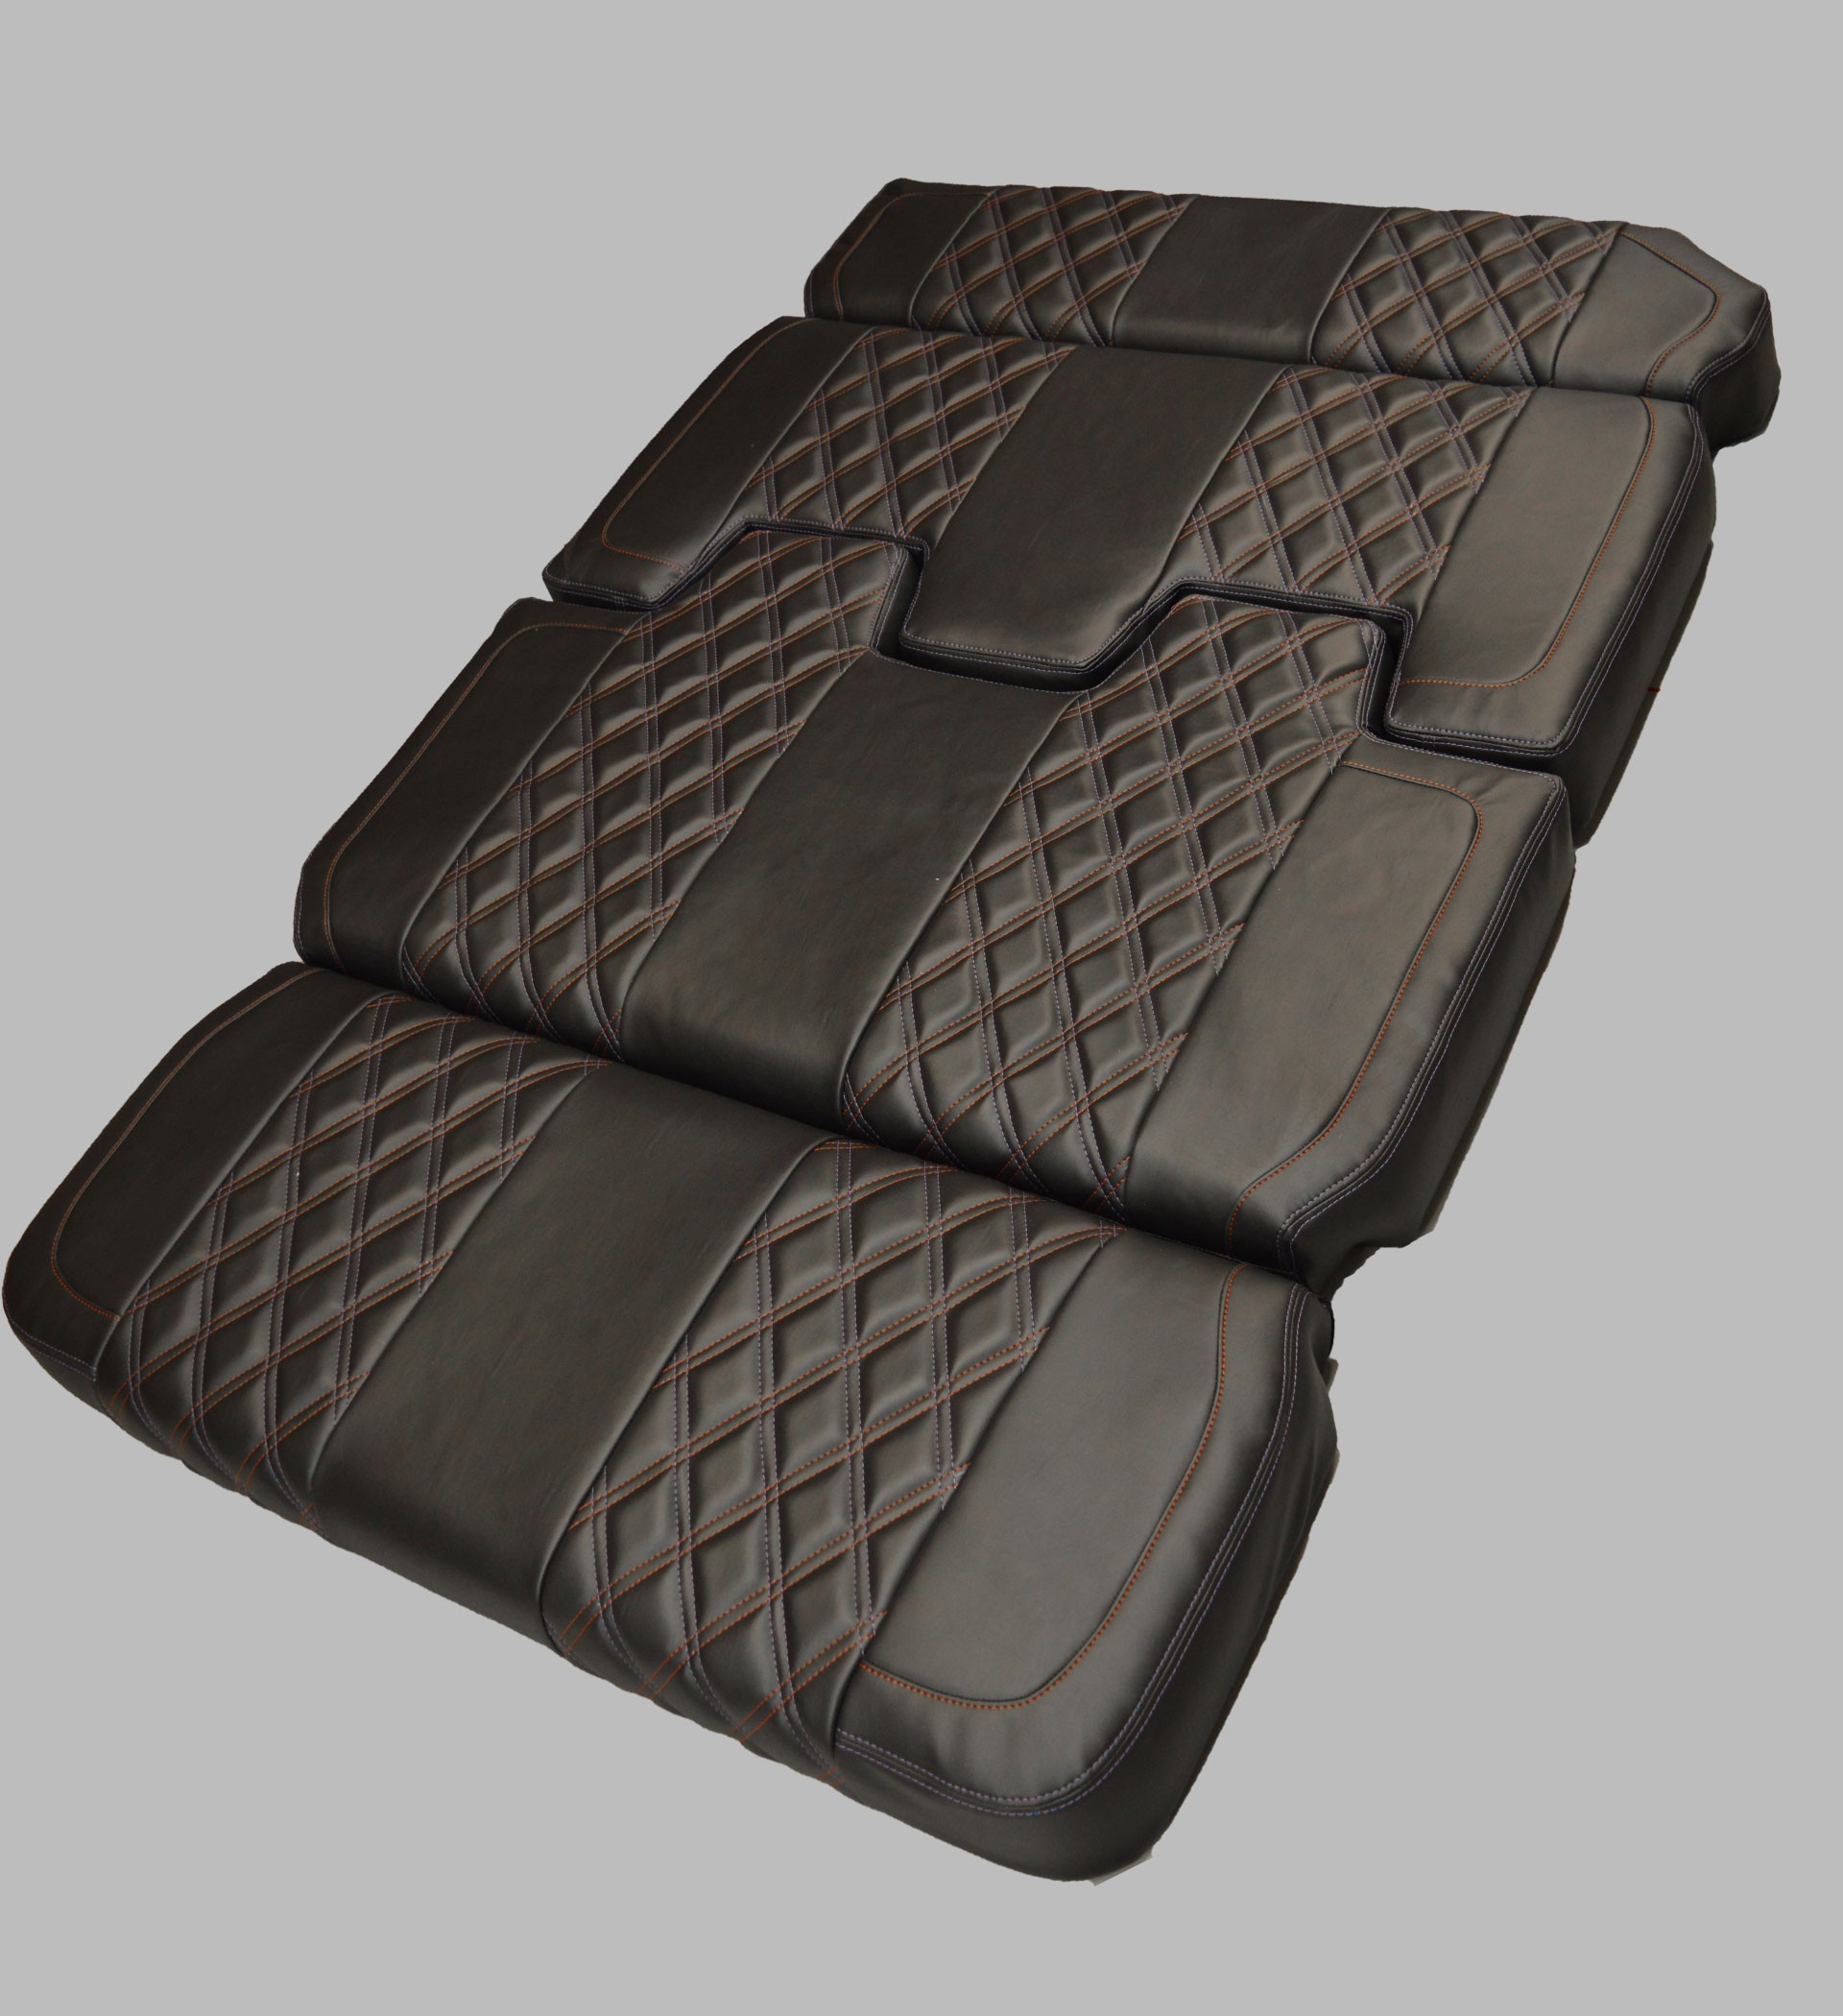 The Washington NLBD2 Standard 2 Seat Covers